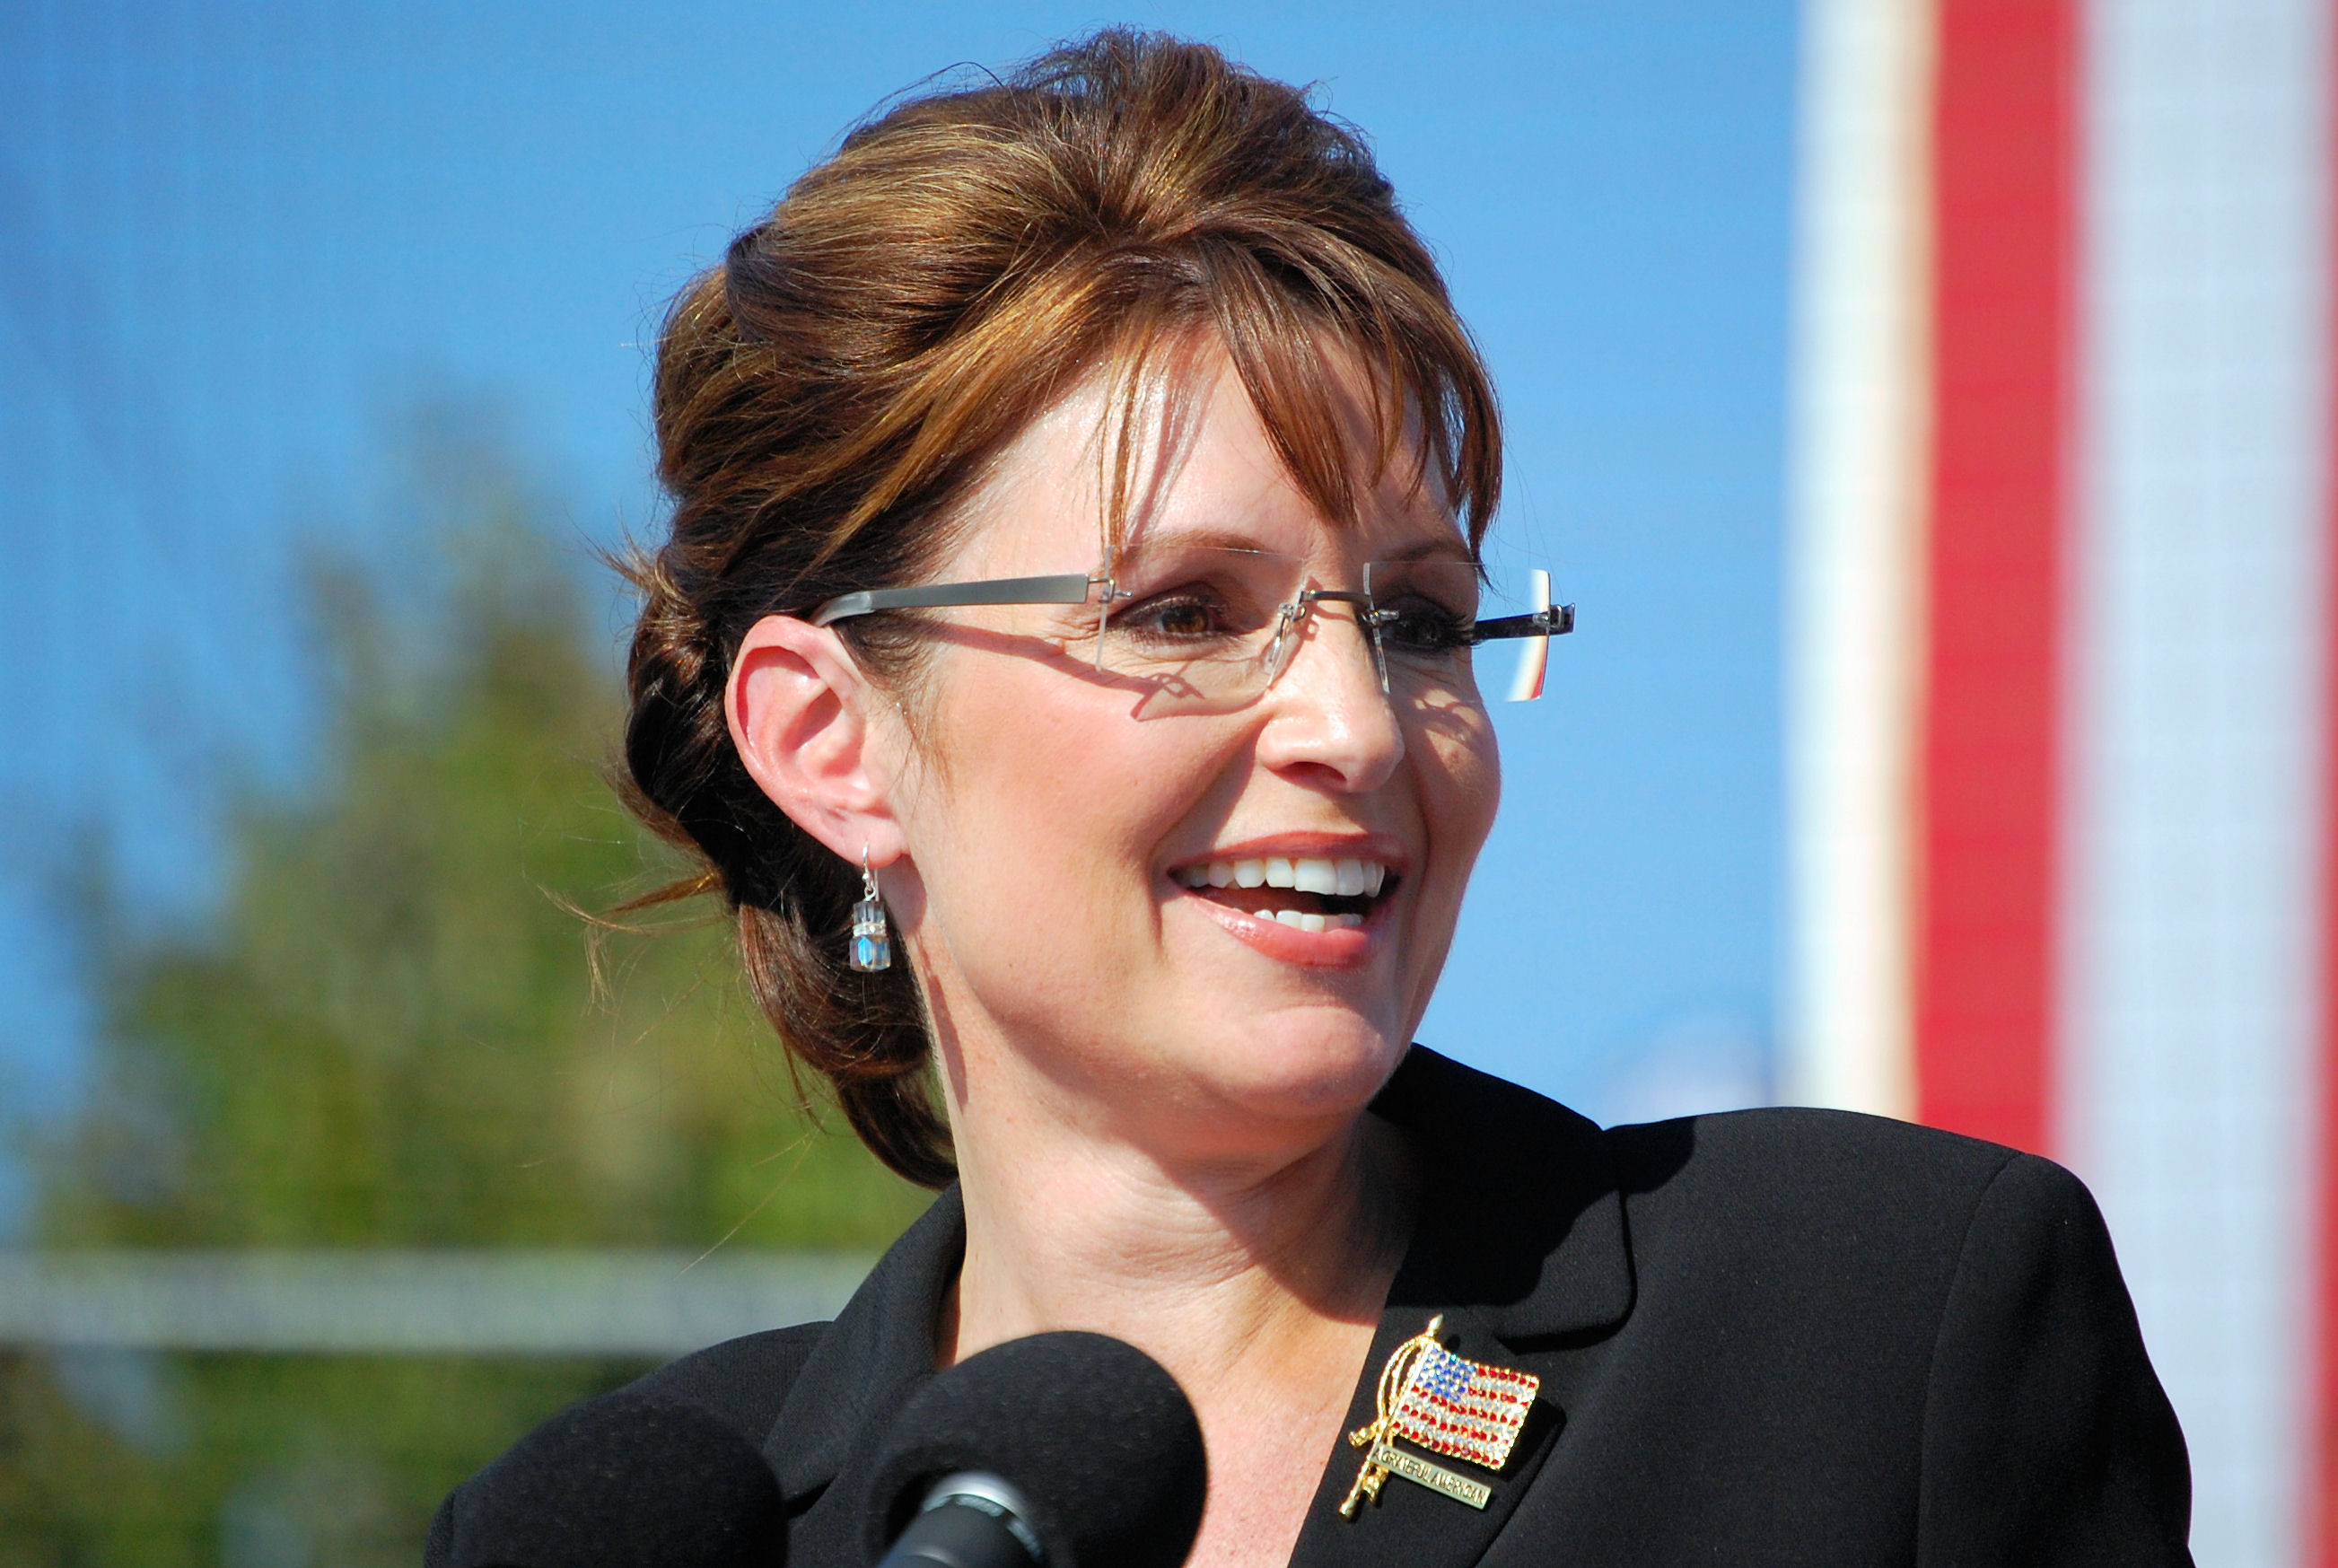 Sarah palin wikipedia palin on the campaign trail in 2008 thecheapjerseys Choice Image